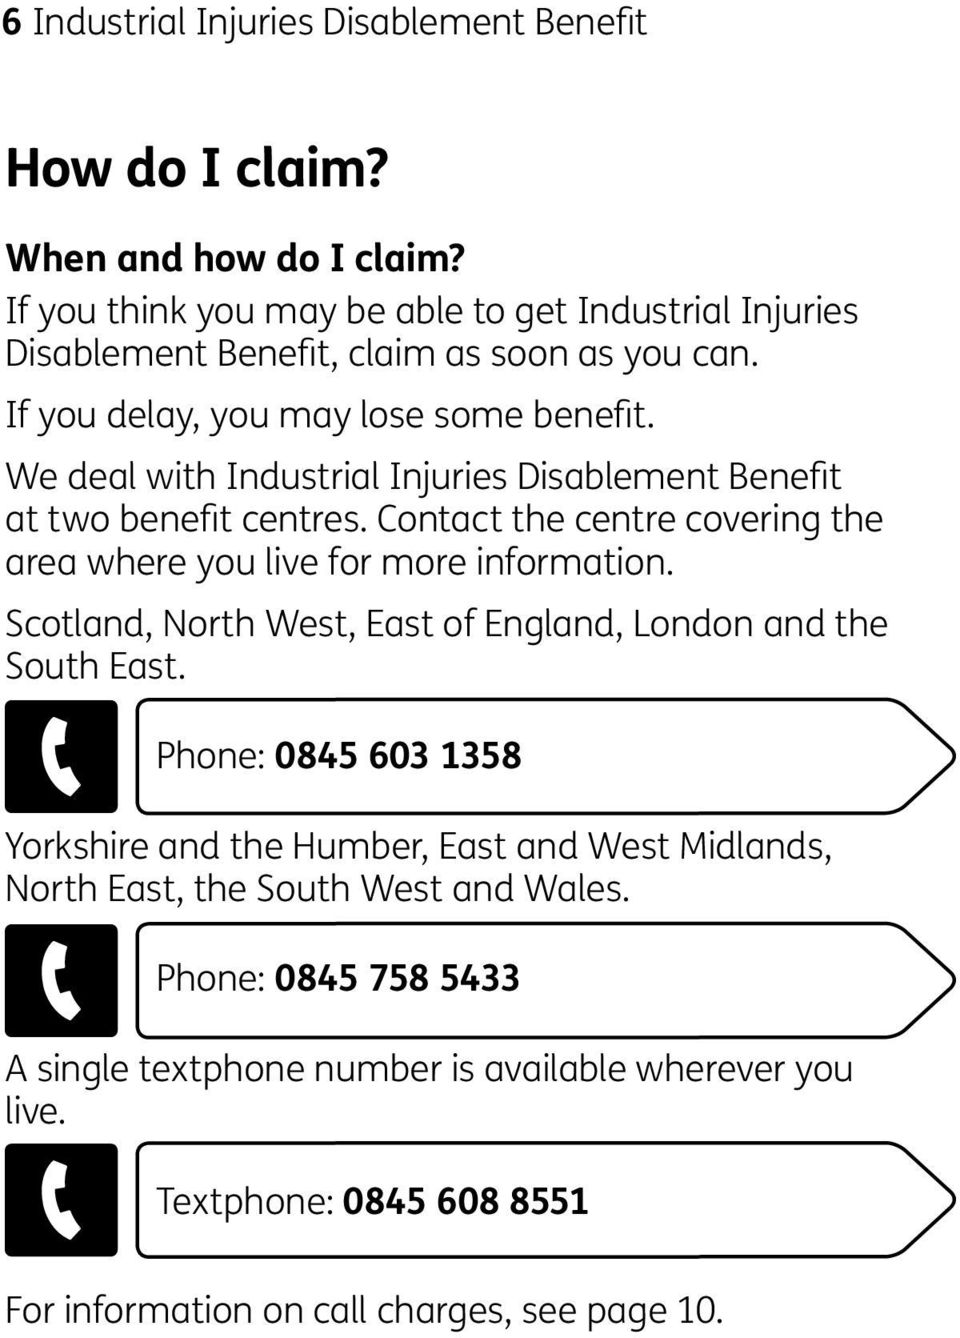 We deal with Industrial Injuries Disablement Benefit at two benefit centres. Contact the centre covering the area where you live for more information.